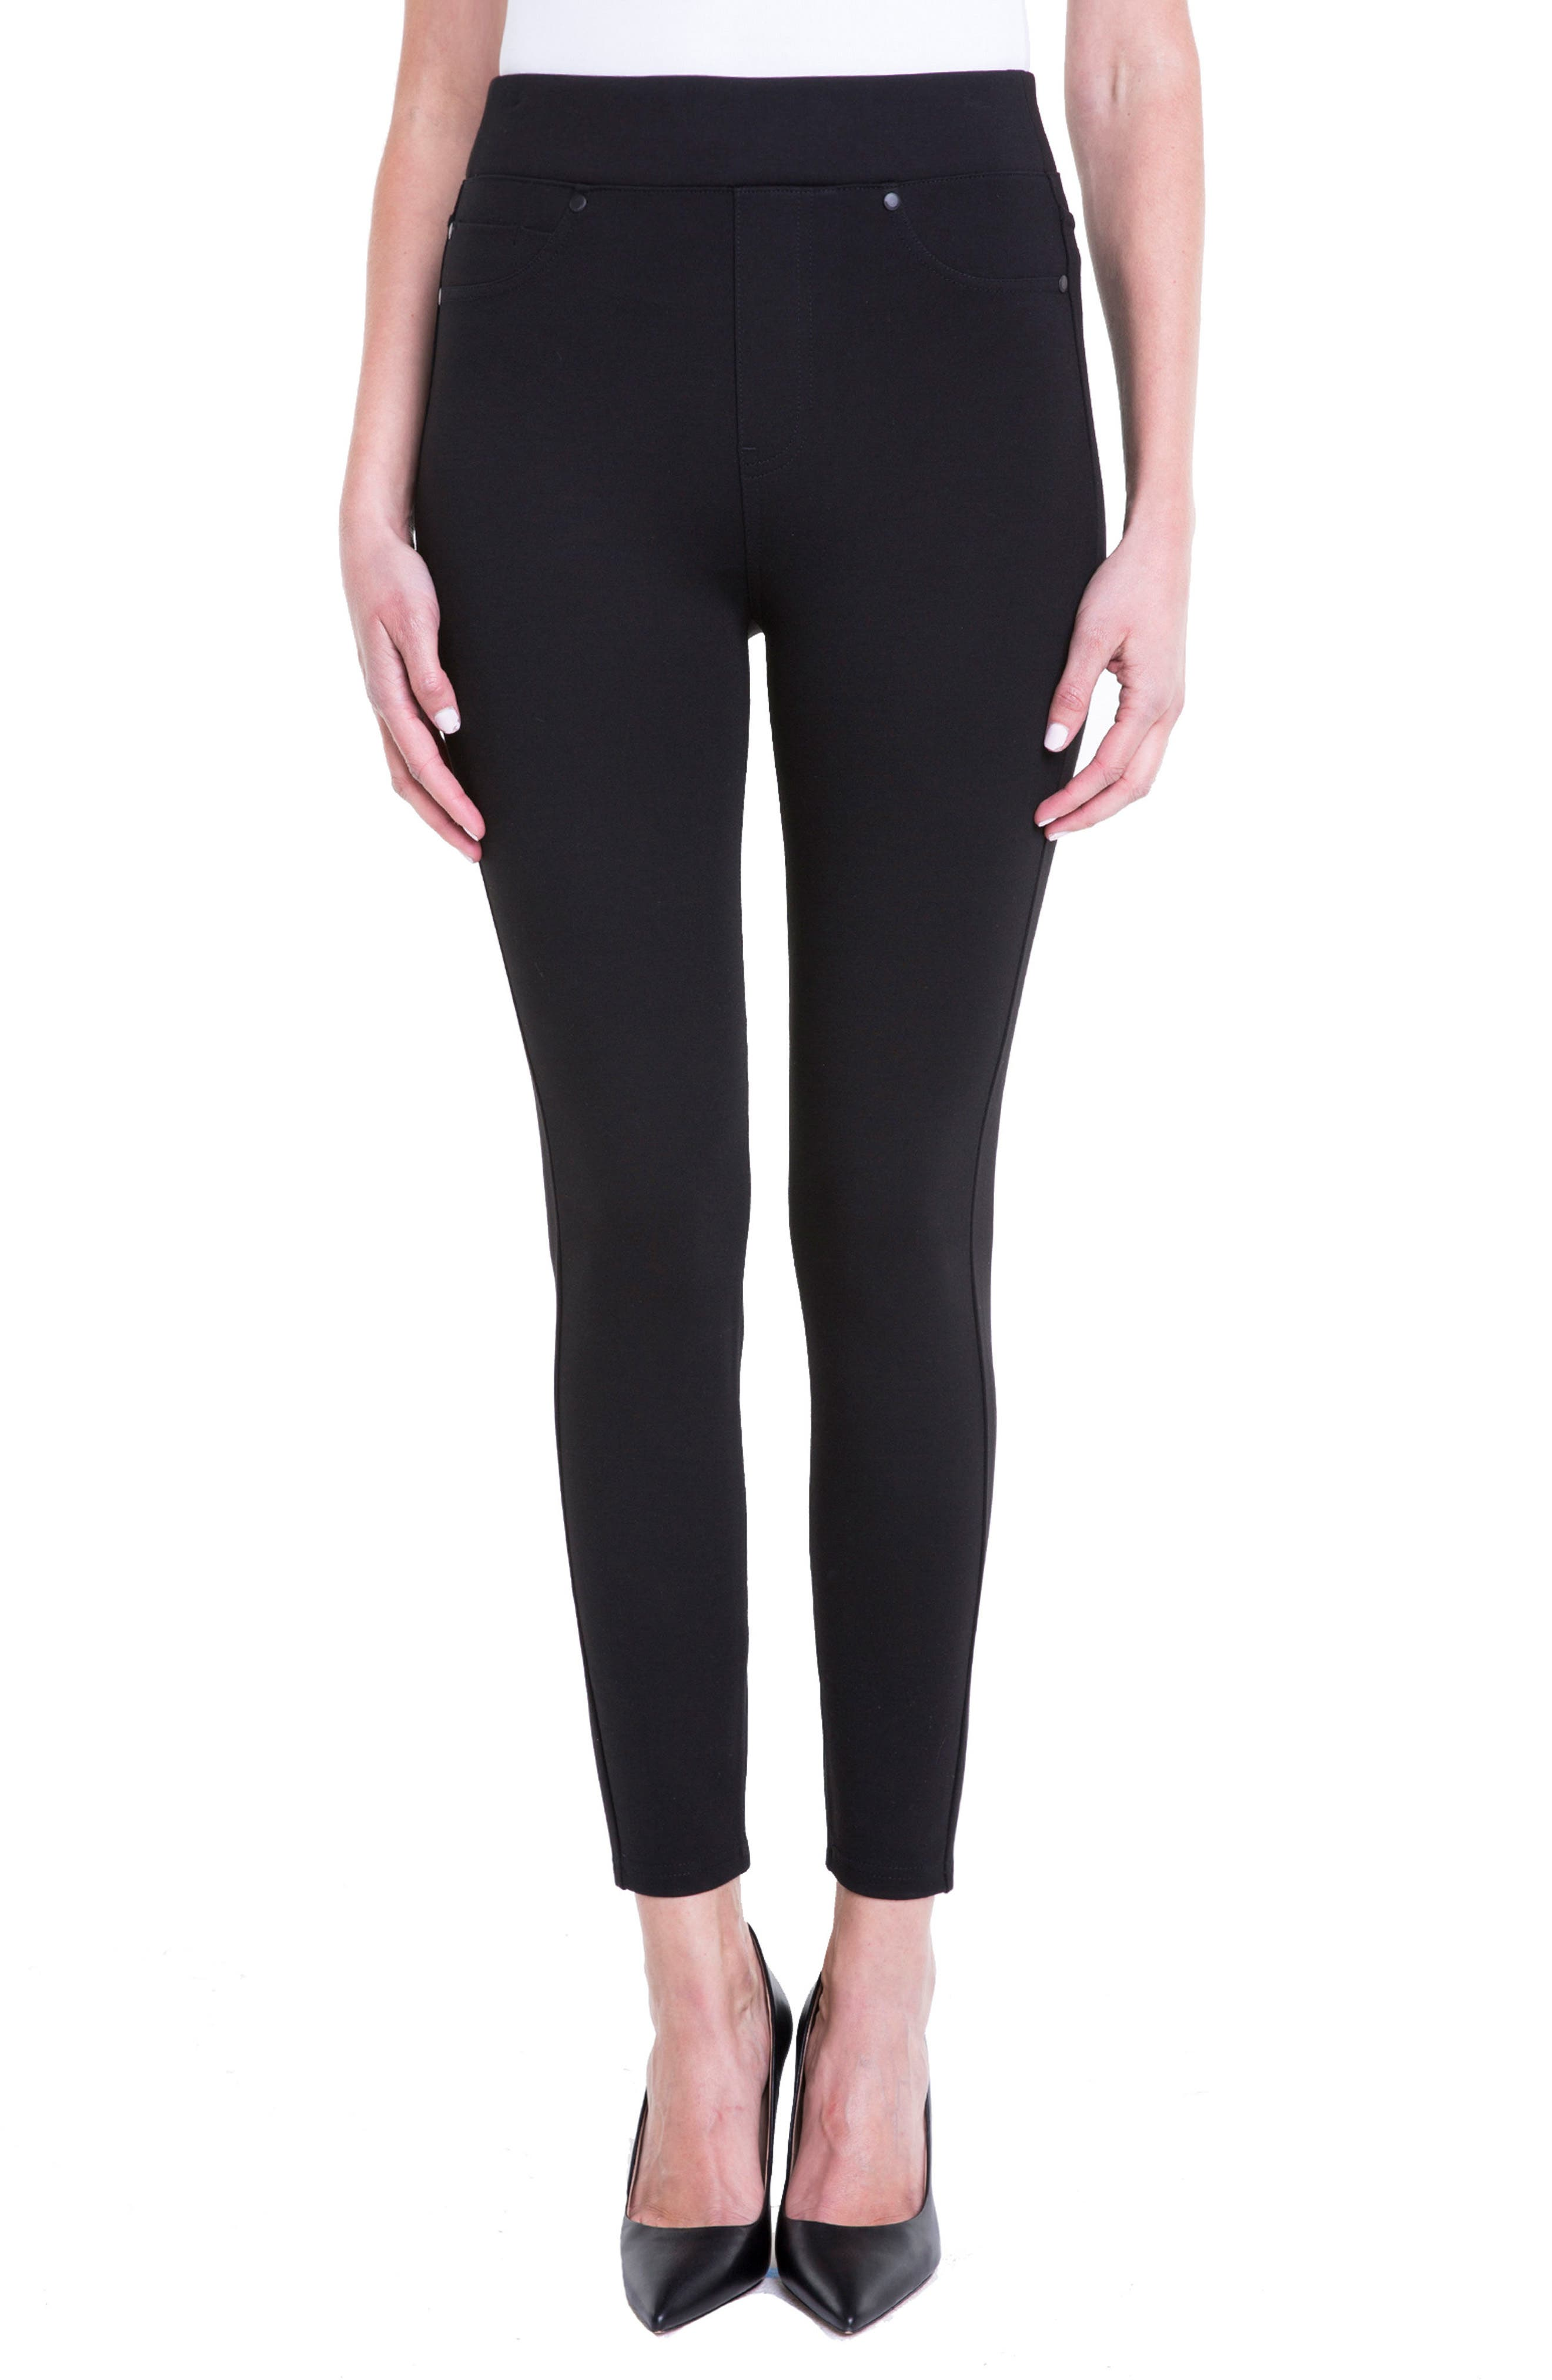 Alternate Image 1 Selected - Liverpool Jeans Company Bridget High Waist Pull-On Ankle Leggings